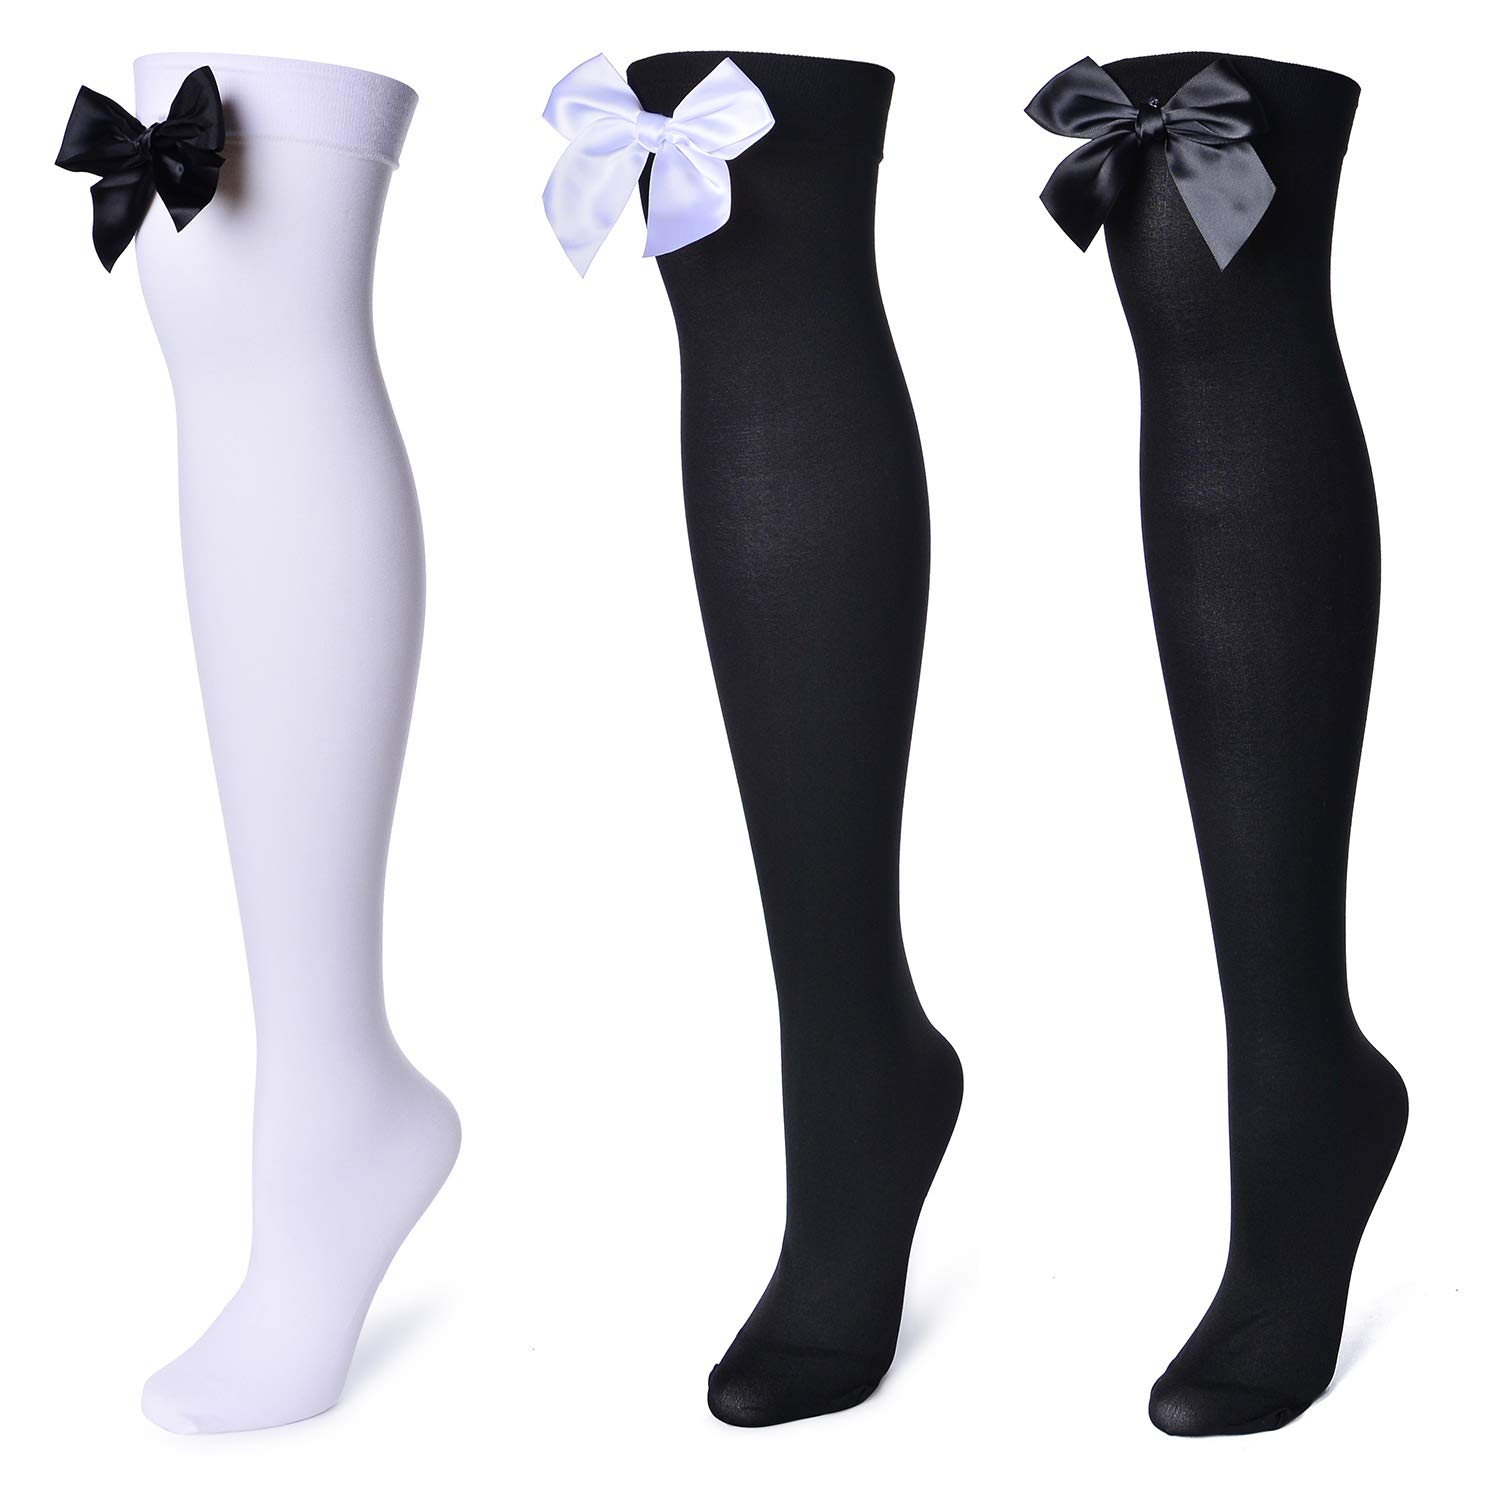 3 Pairs Womens Girls Solid Color Striped Over The Knee High Stockings Socks bows Tie Lace